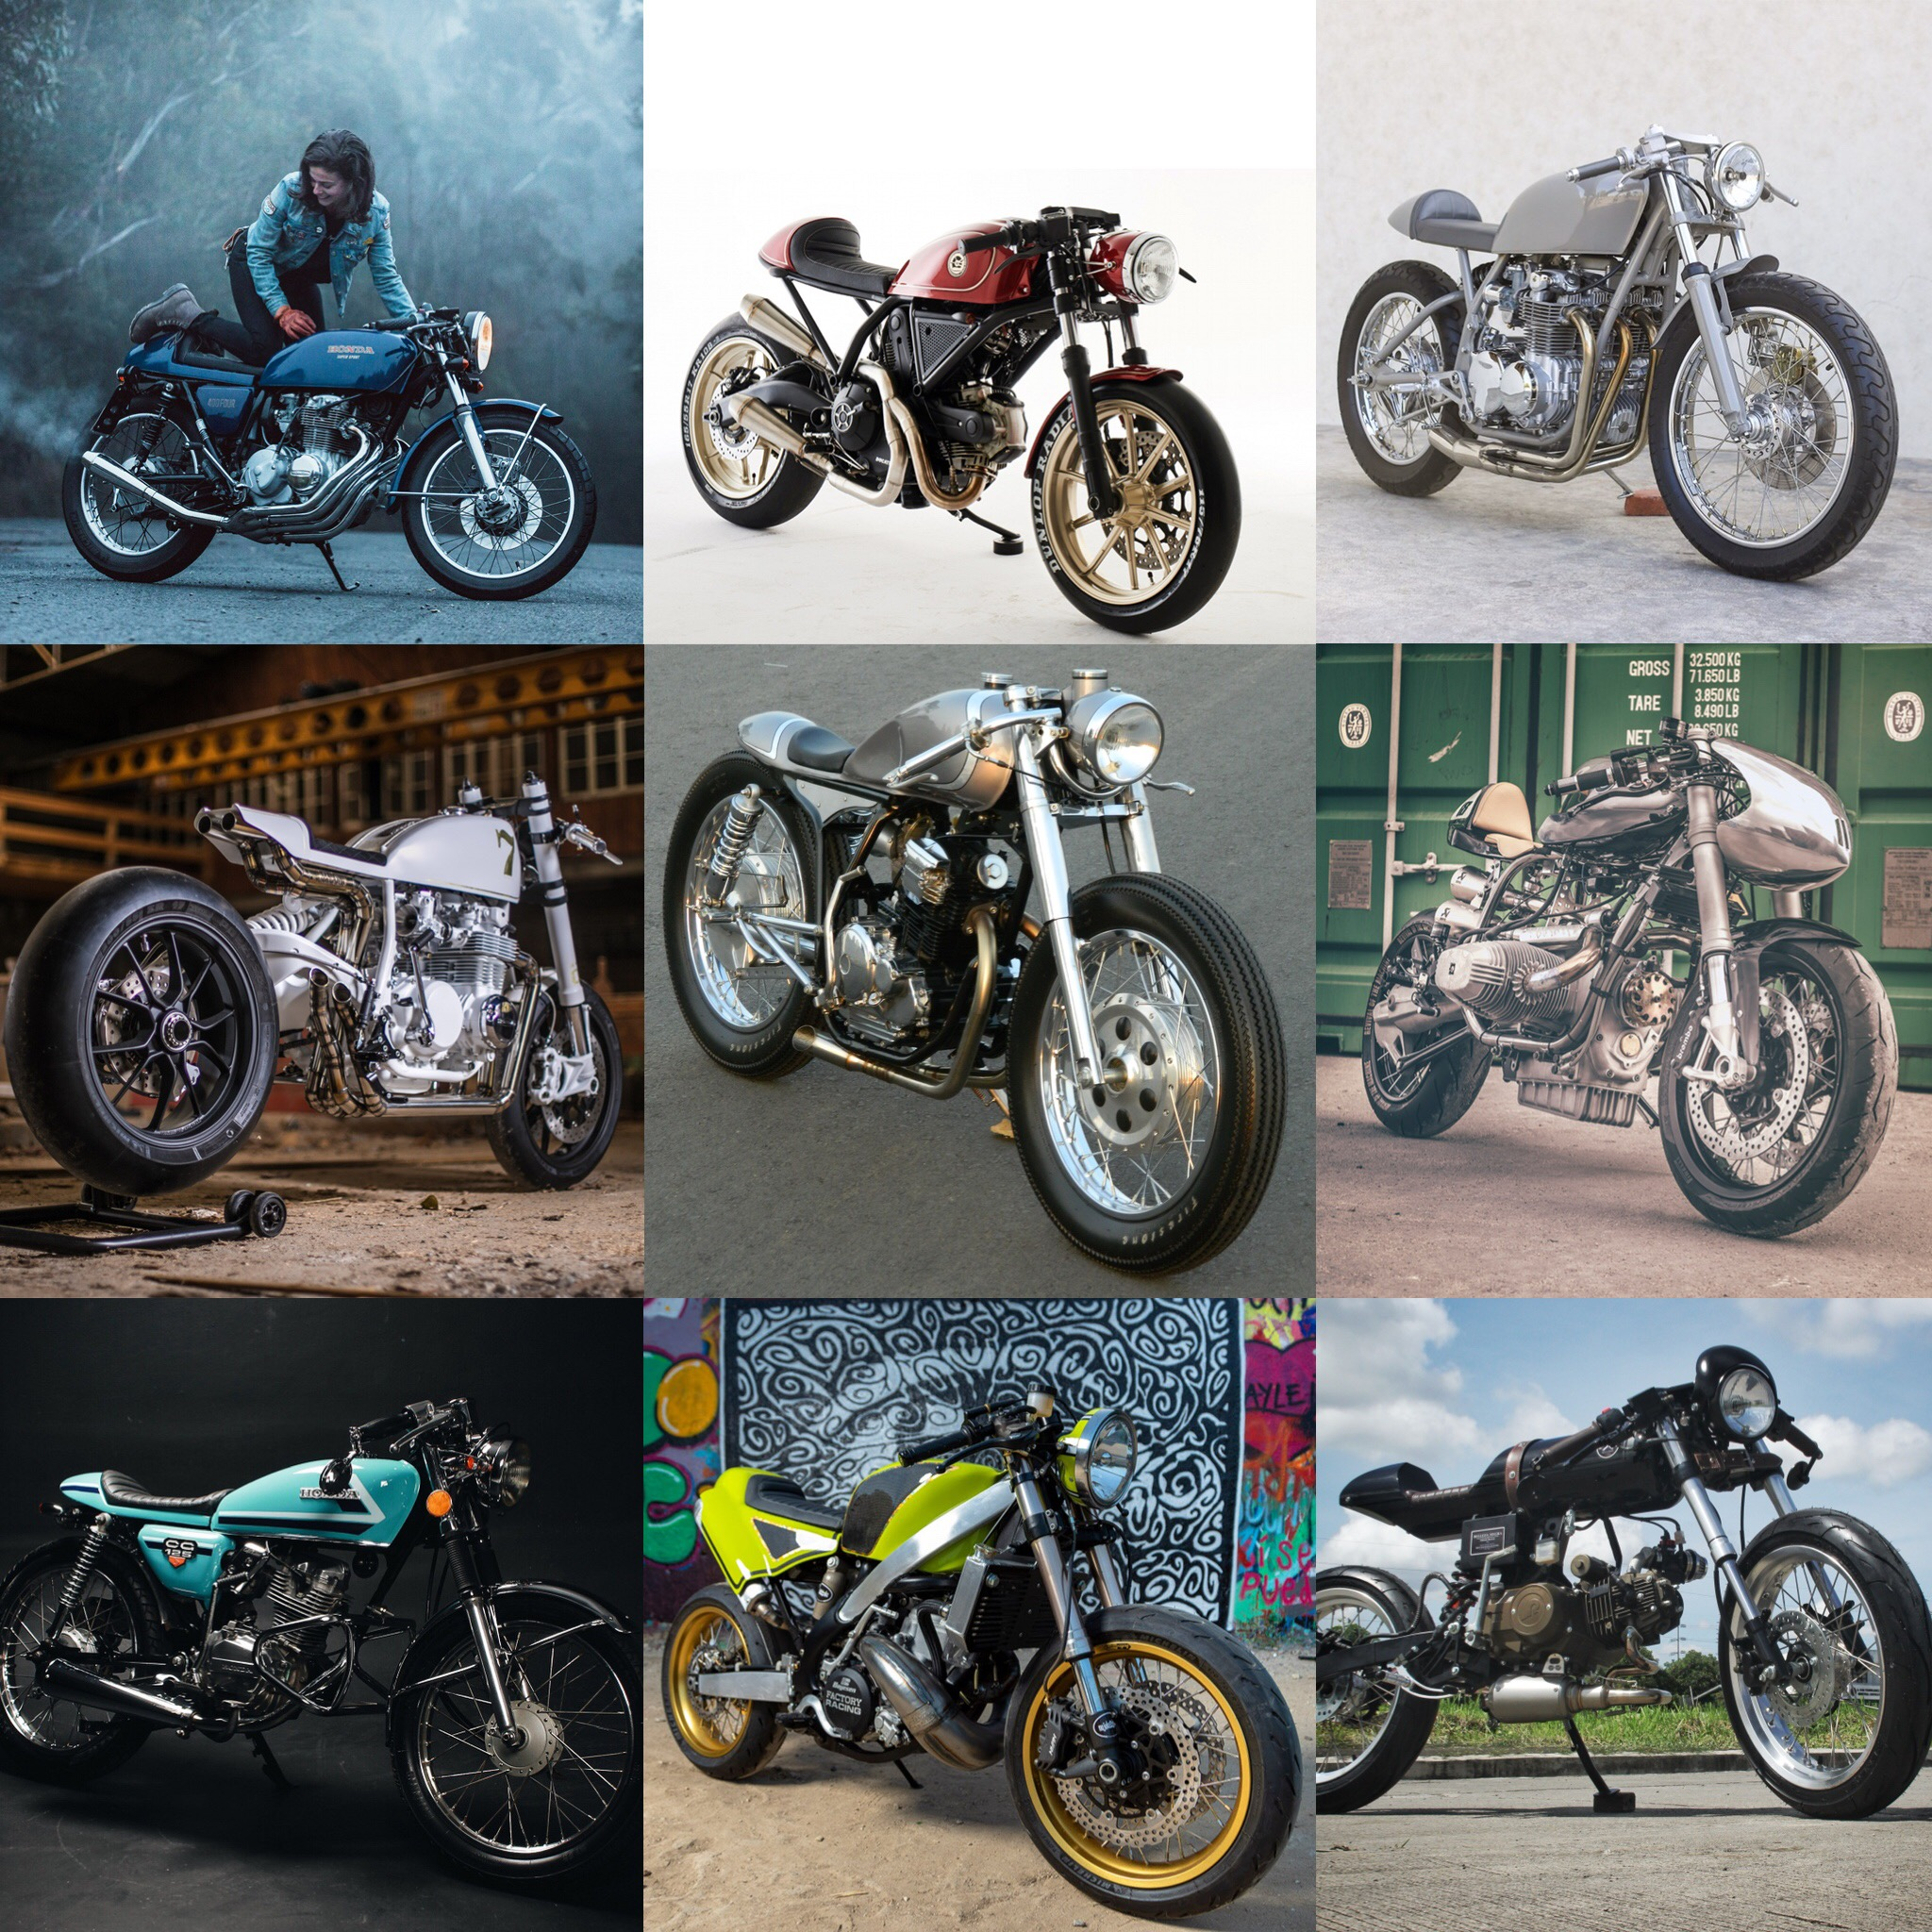 Top 10 Cafe Racers of 2018